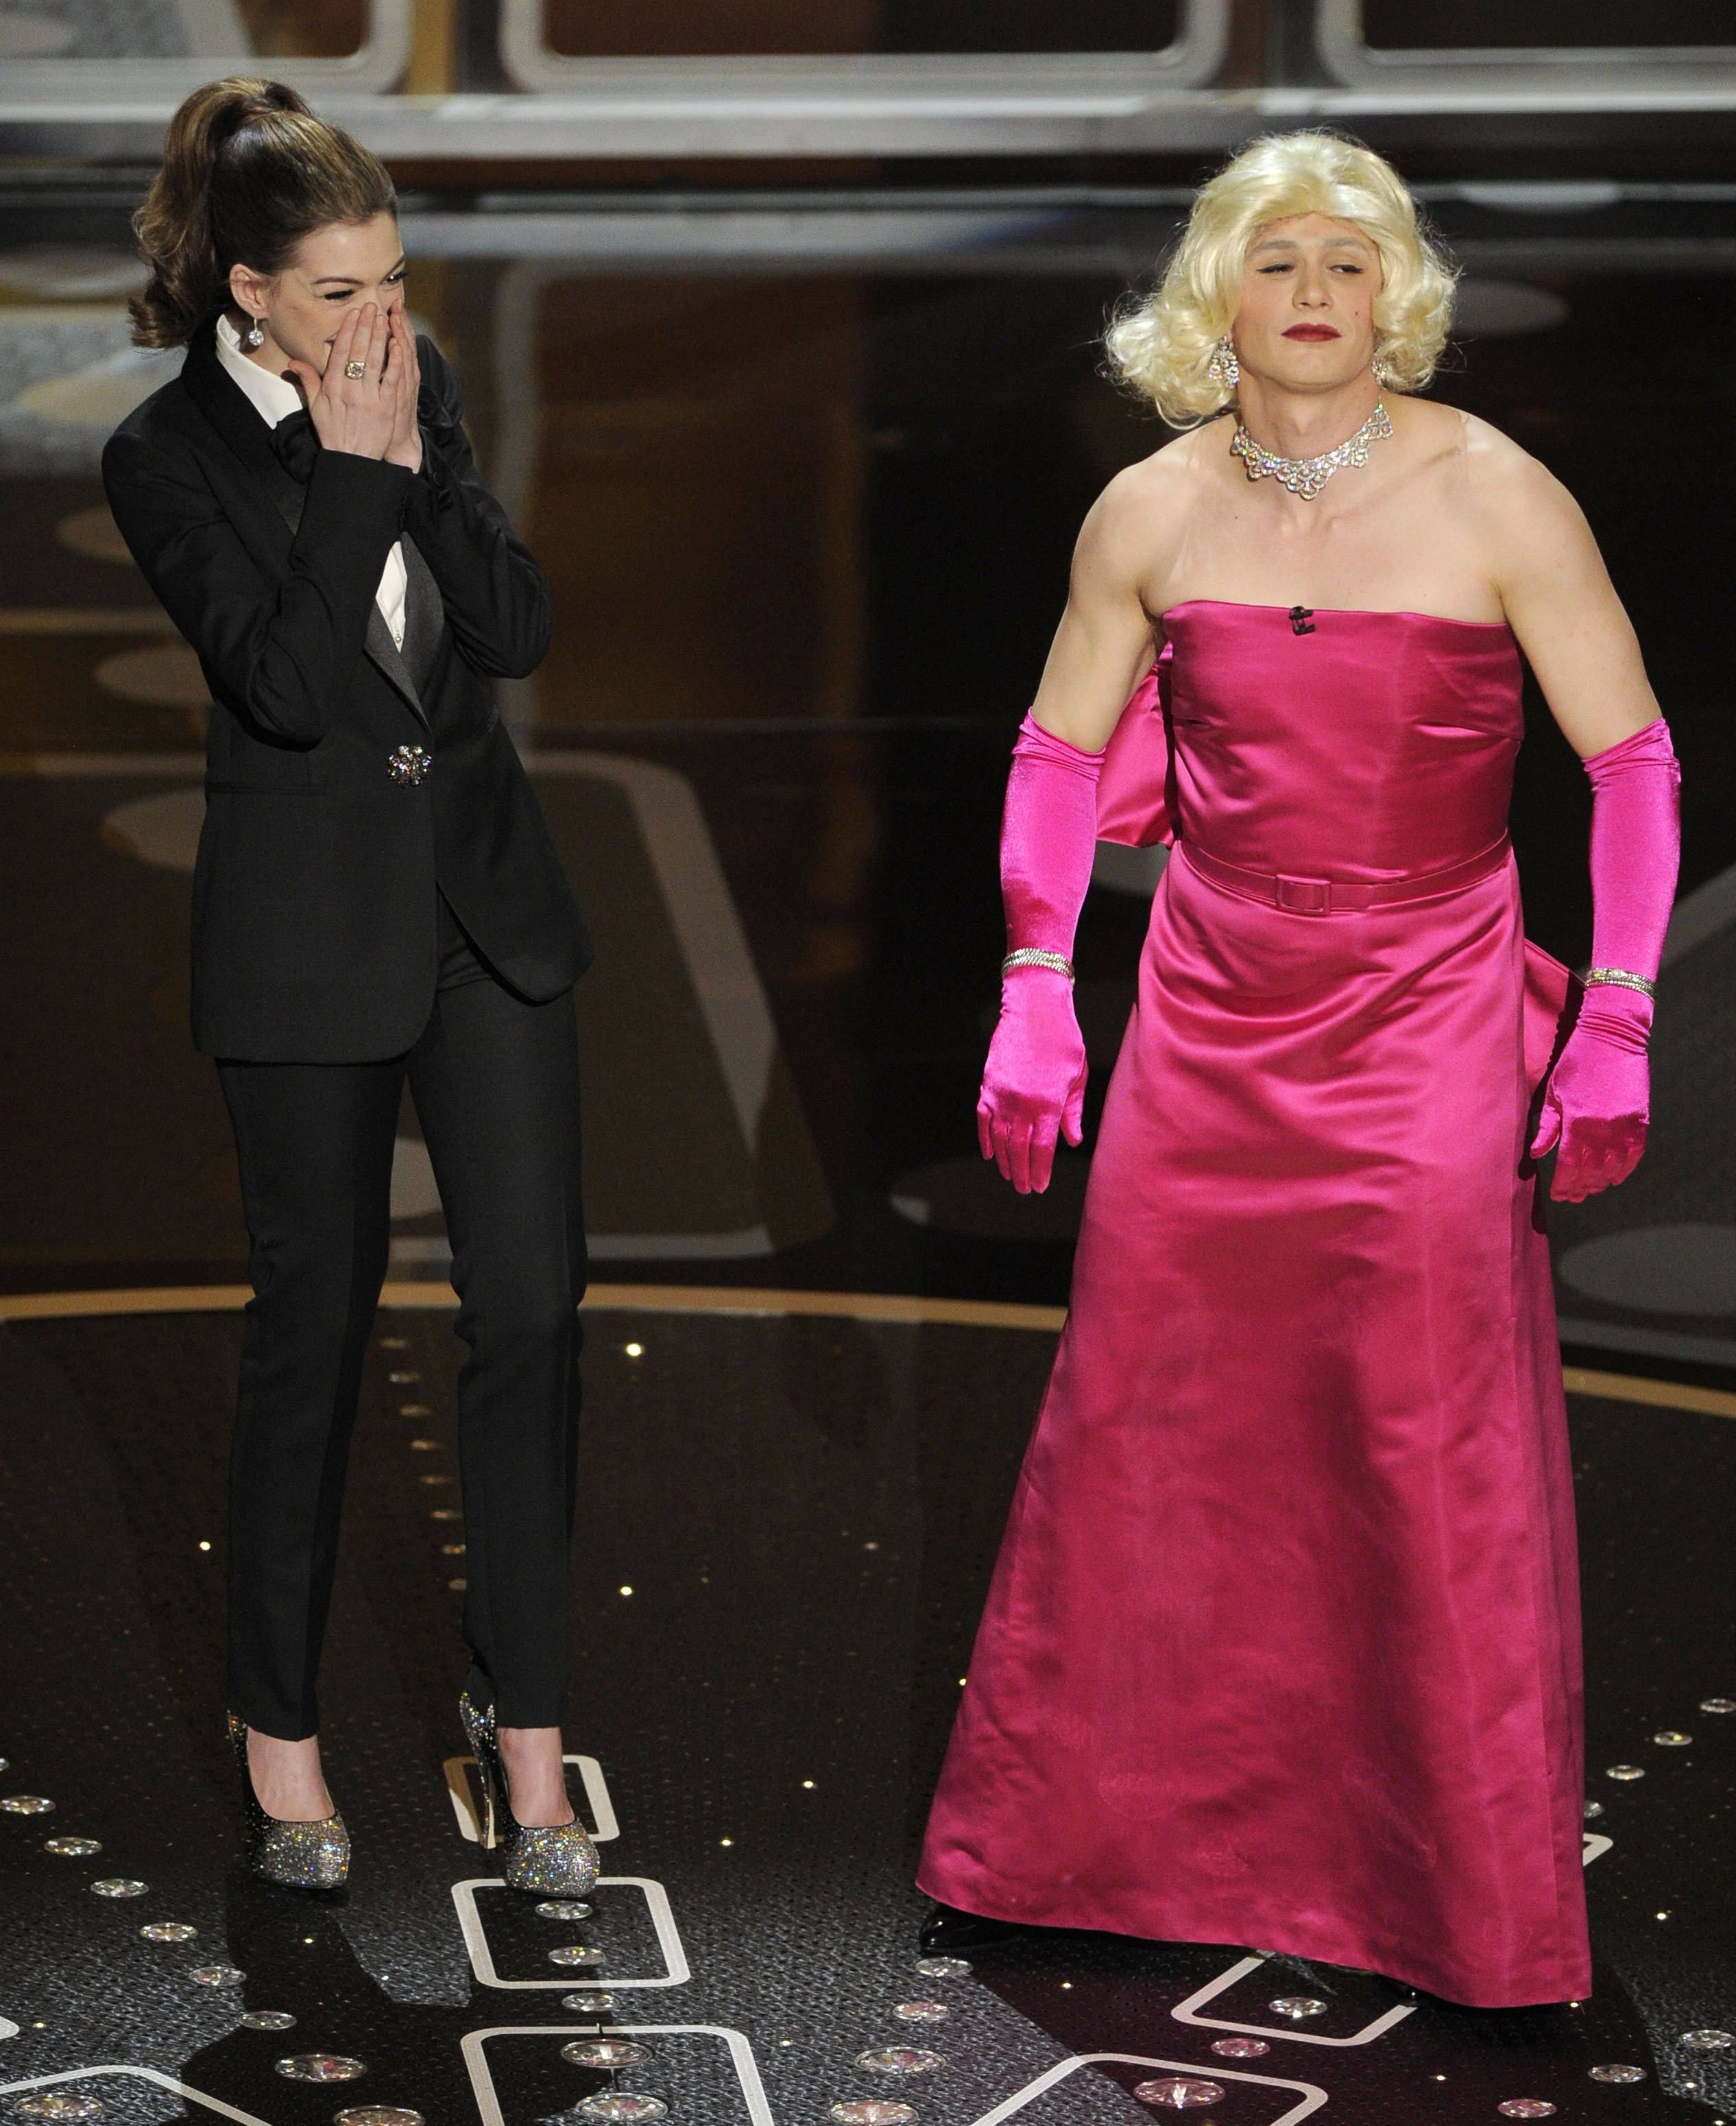 Associated PressShow hosts Anne Hathaway, left, and James Franco are seen during the 83rd Academy Awards.